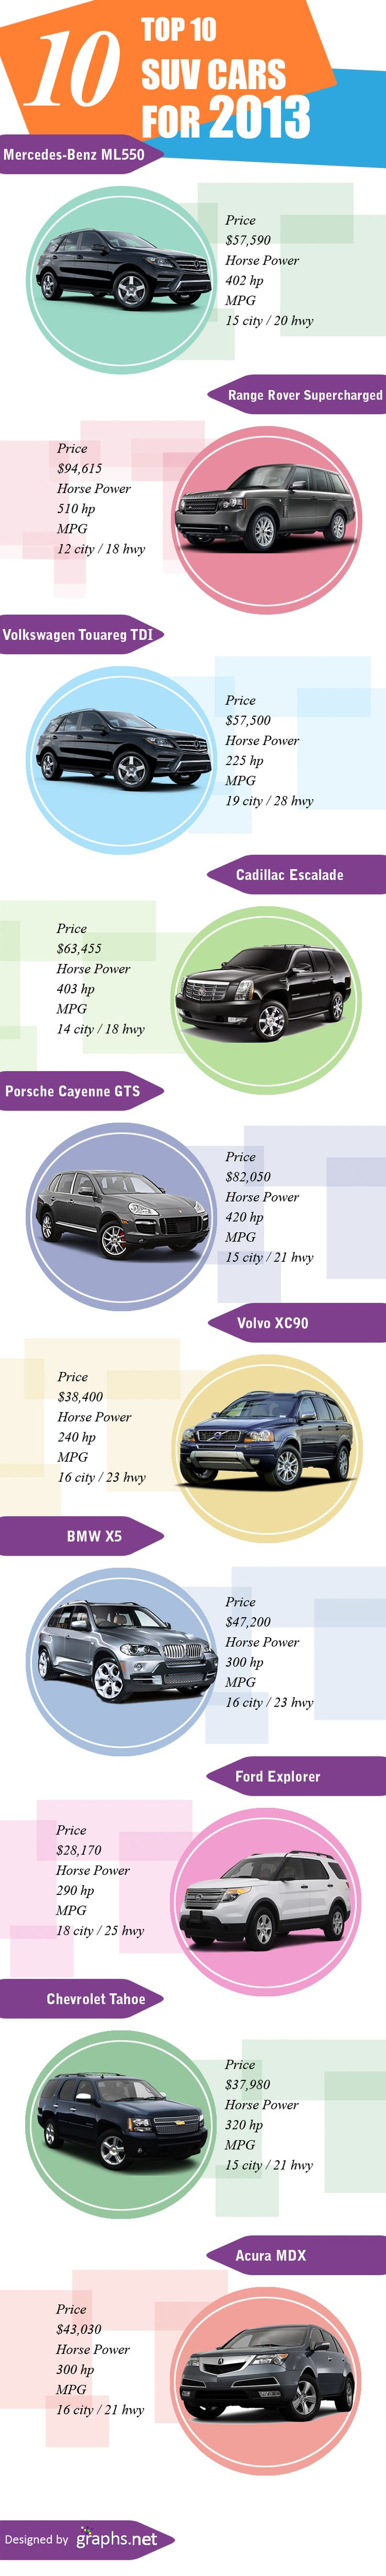 Top Ten SUV Cars for 2013 #infografía